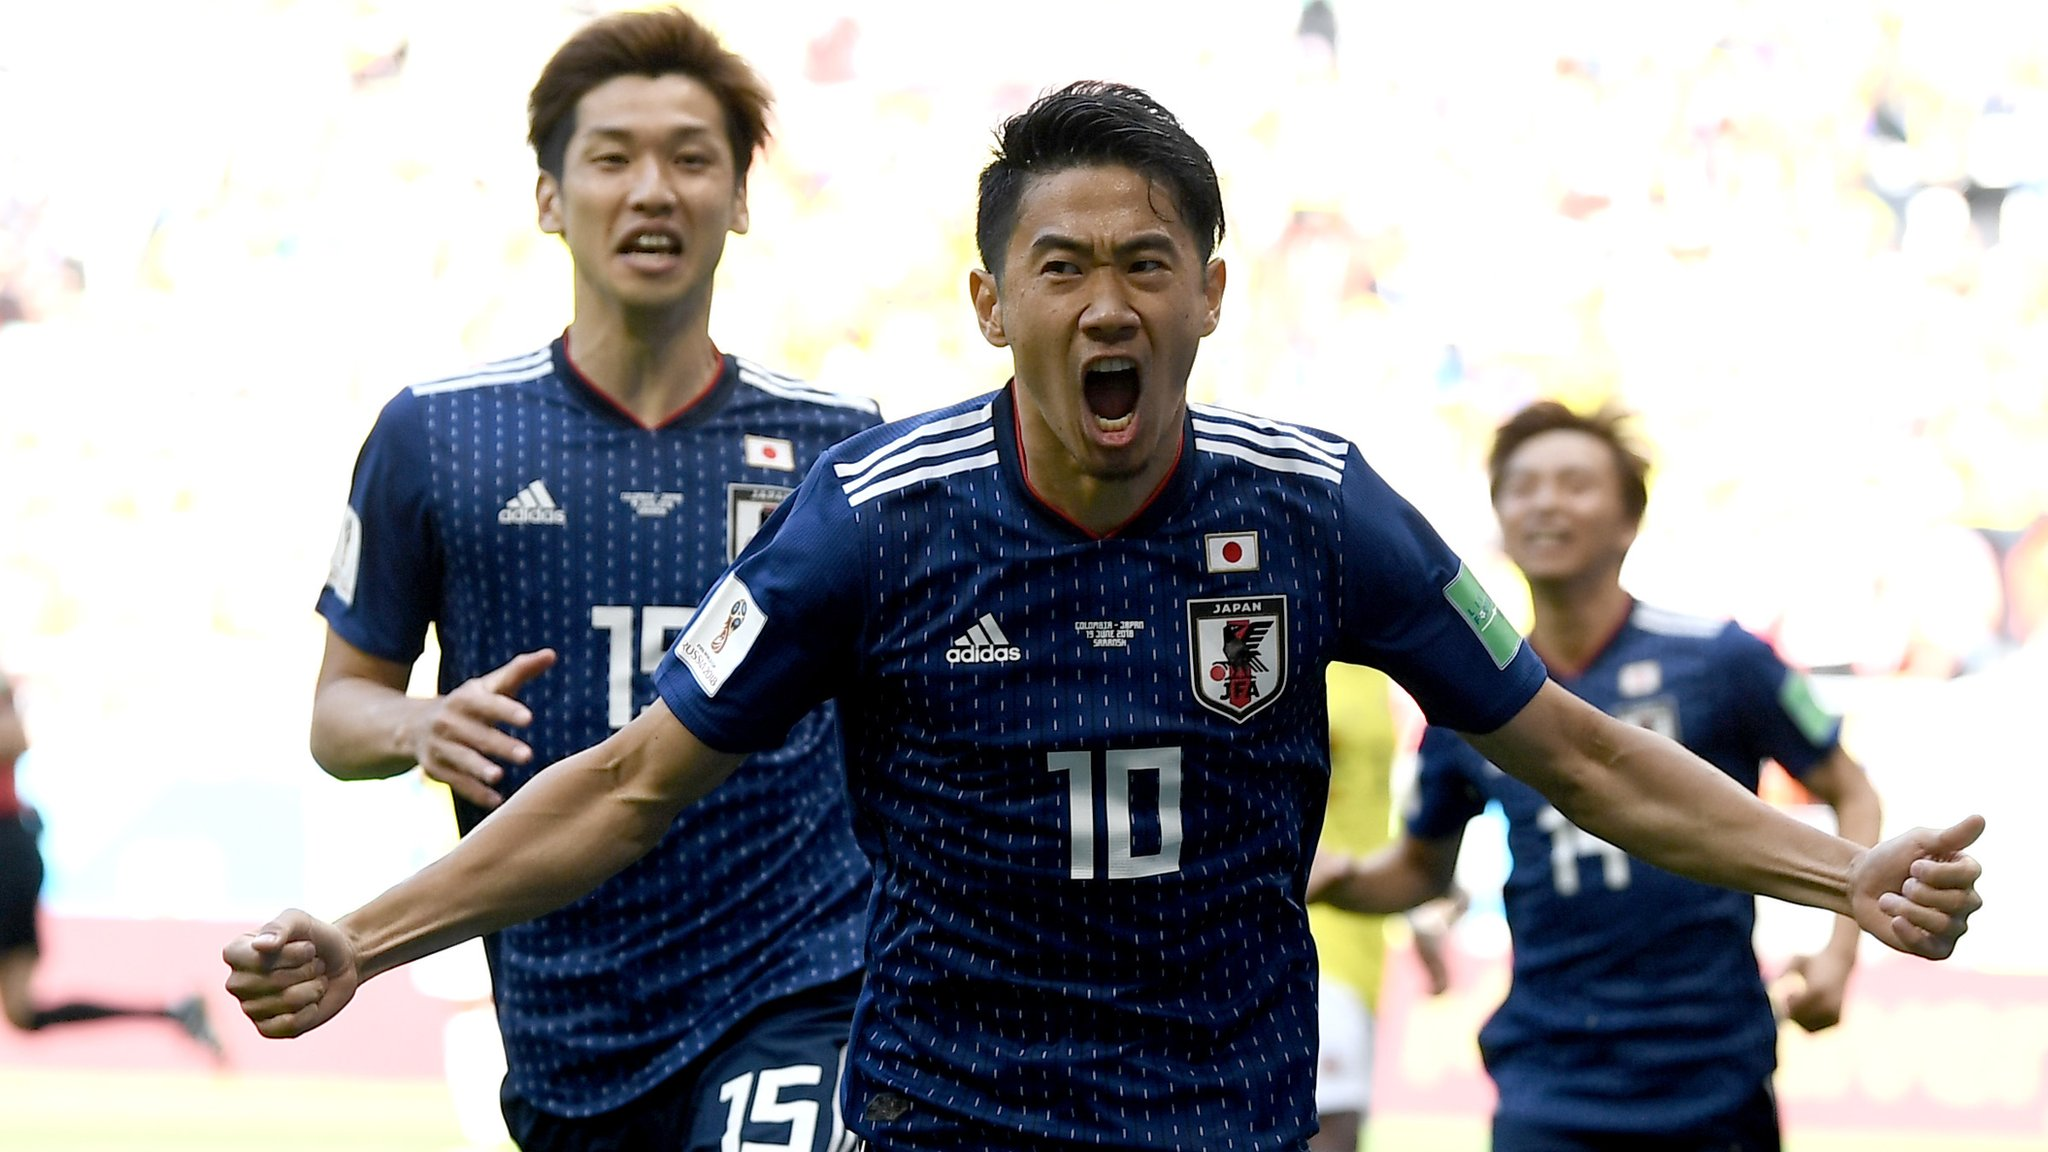 World Cup 2018: Colombia v Japan - how you rated the players